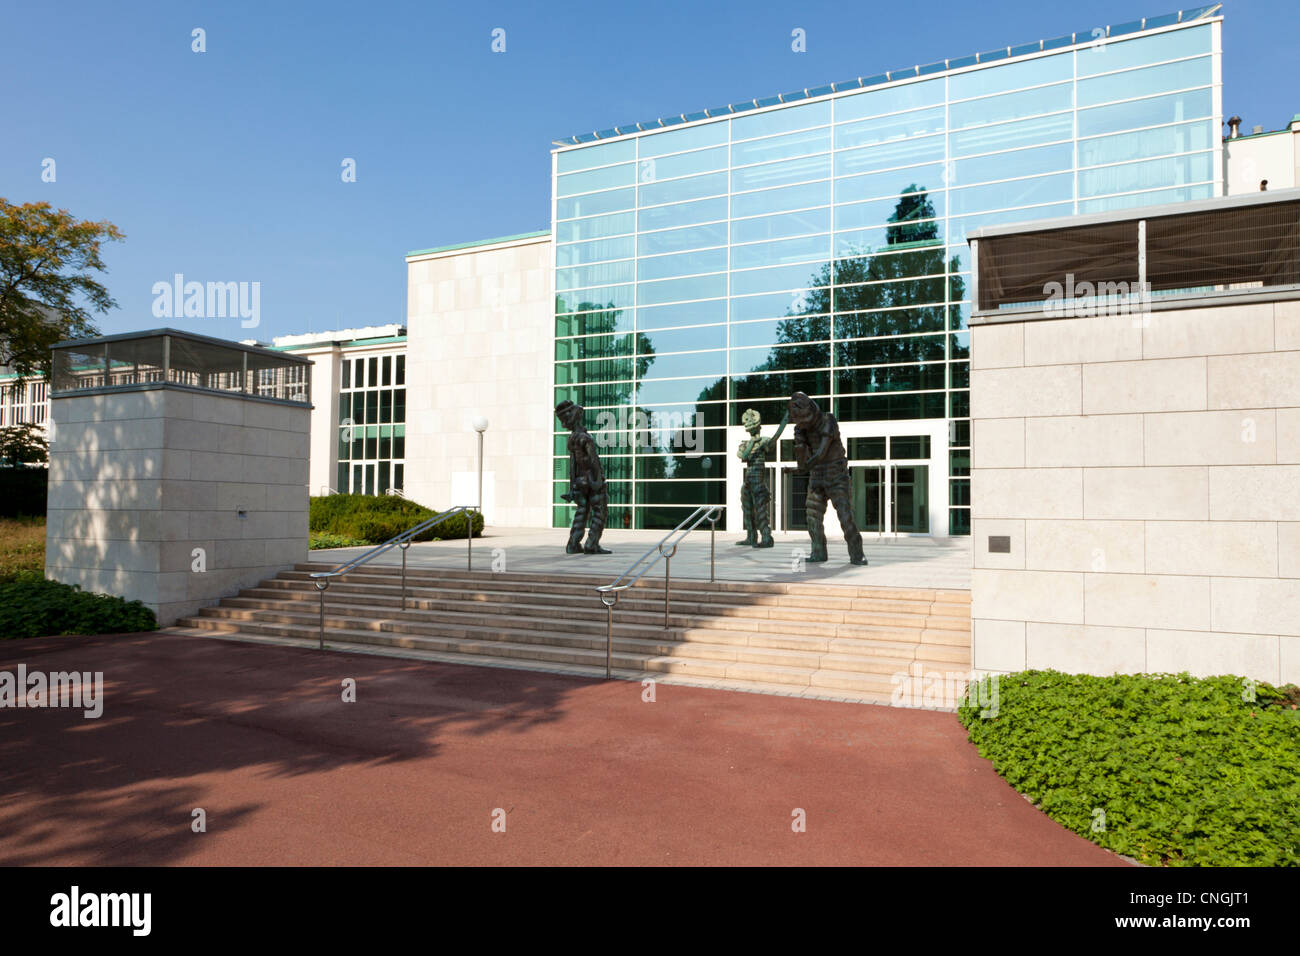 Entrance of Philharmony Essen, the Saalbau, with sculptures 'The Big Ghosts' by Thomas Schütte. - Stock Image